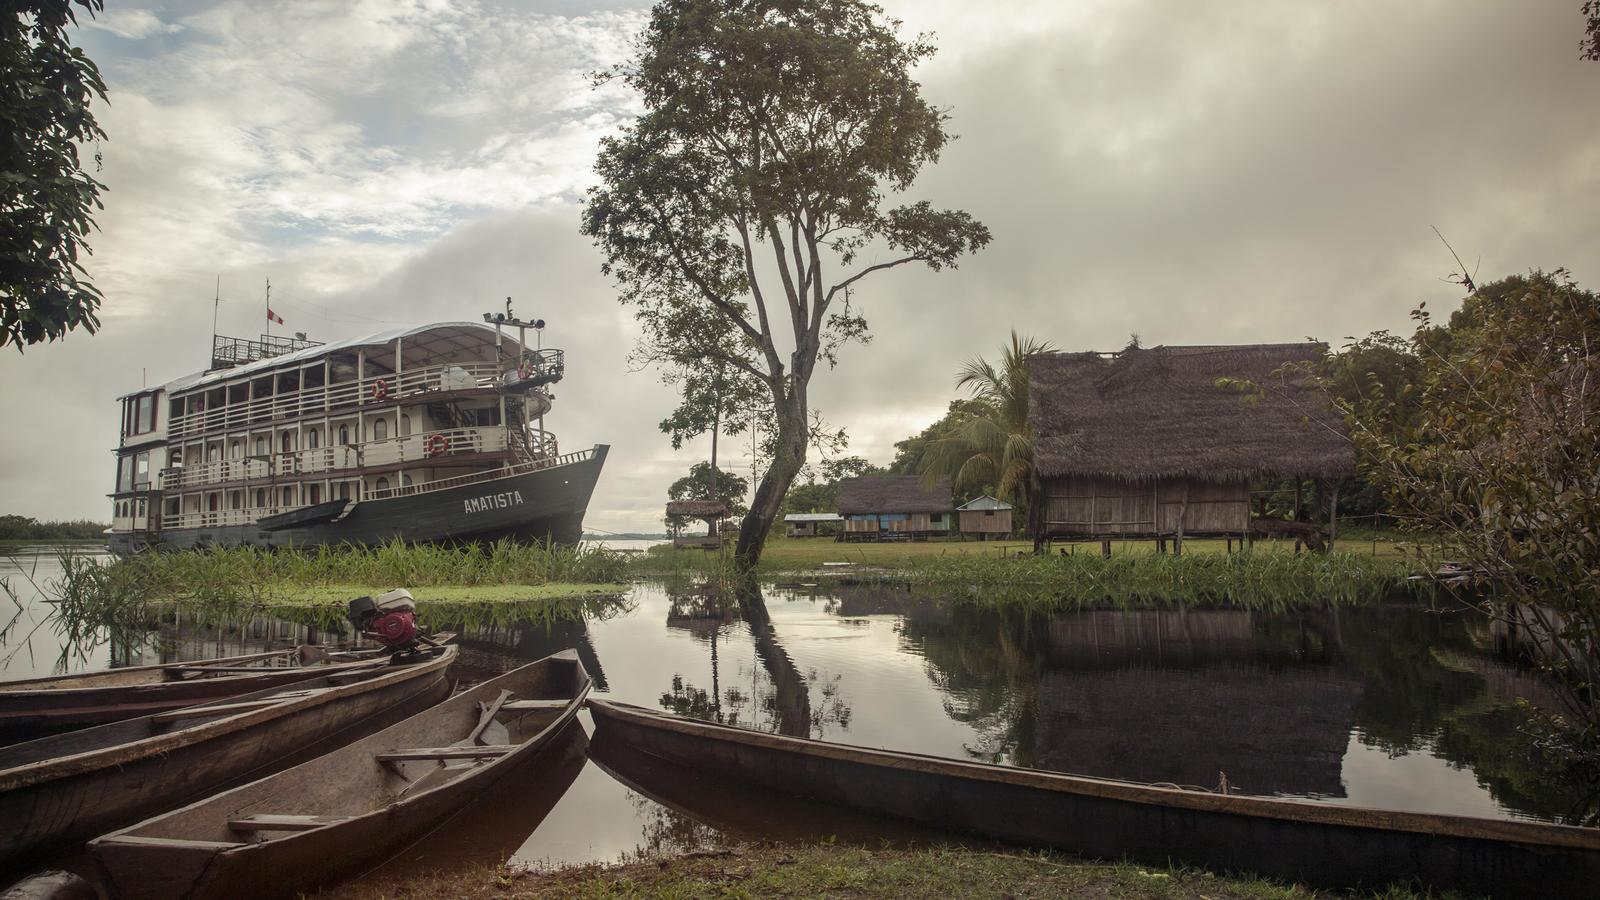 Riverboat on the amazon with 3 skiffs in the forground